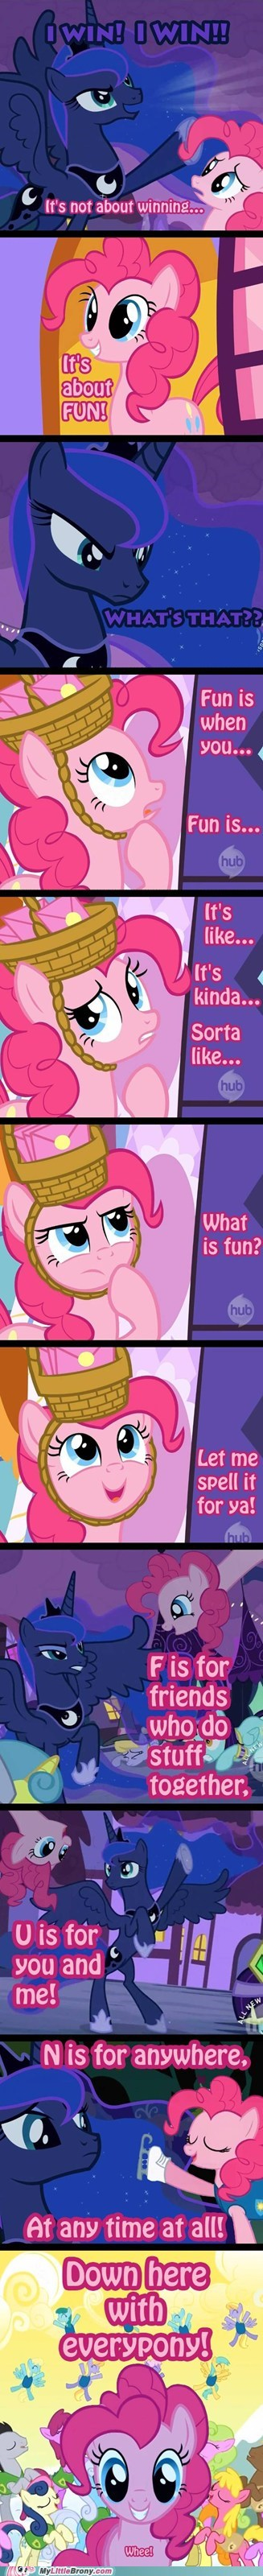 fun comics SpongeBob SquarePants pinkie pie luna - 7385549056